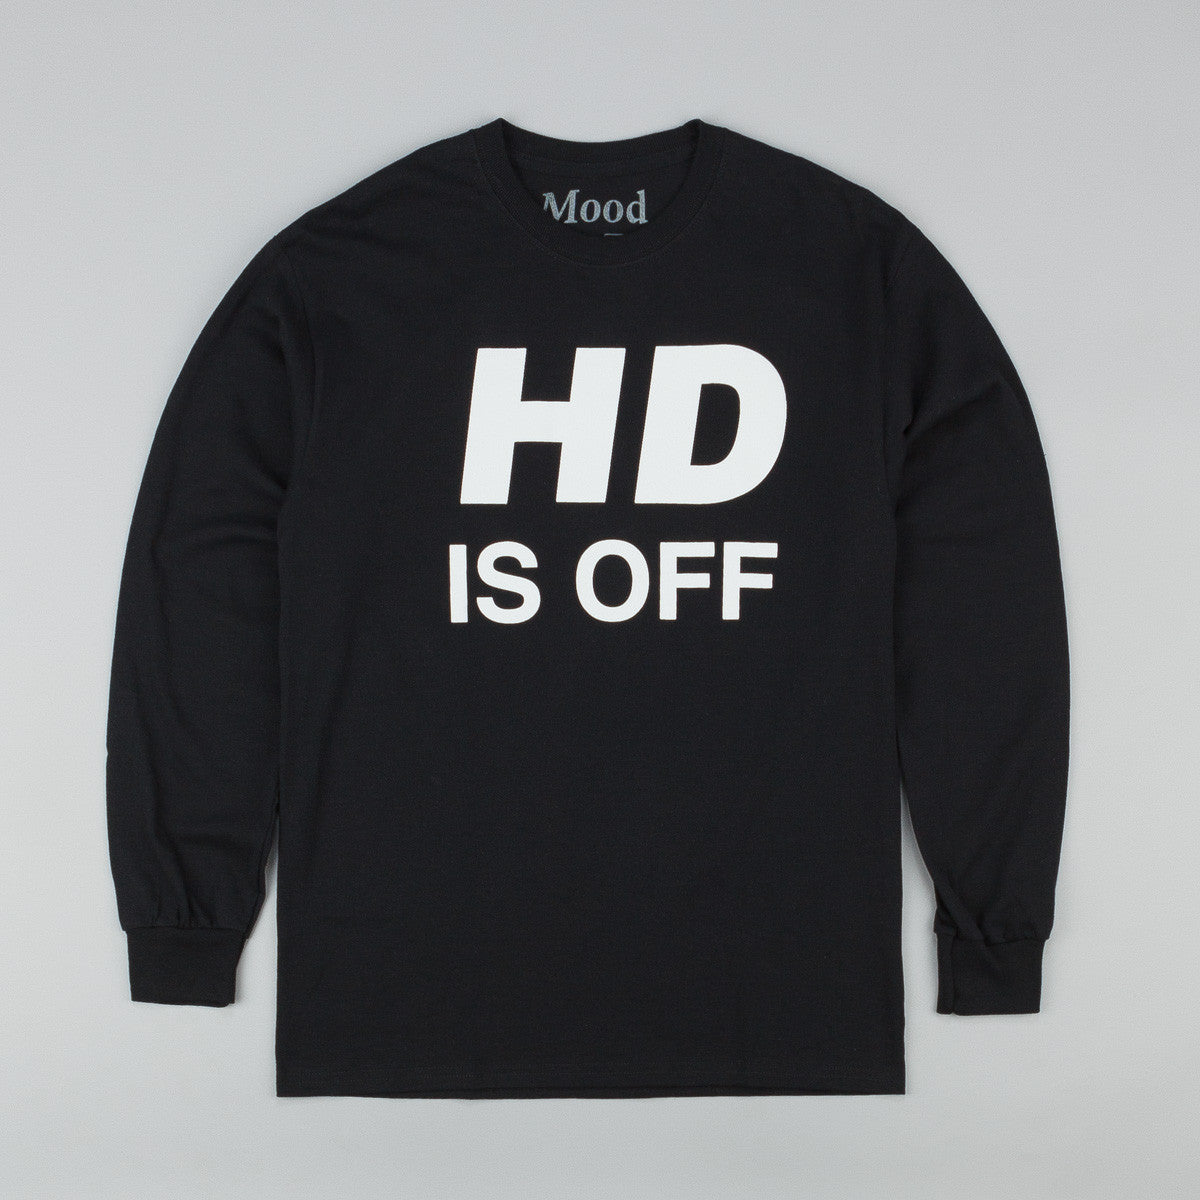 Mood NYC HD is OFF L/S T-Shirt - Black